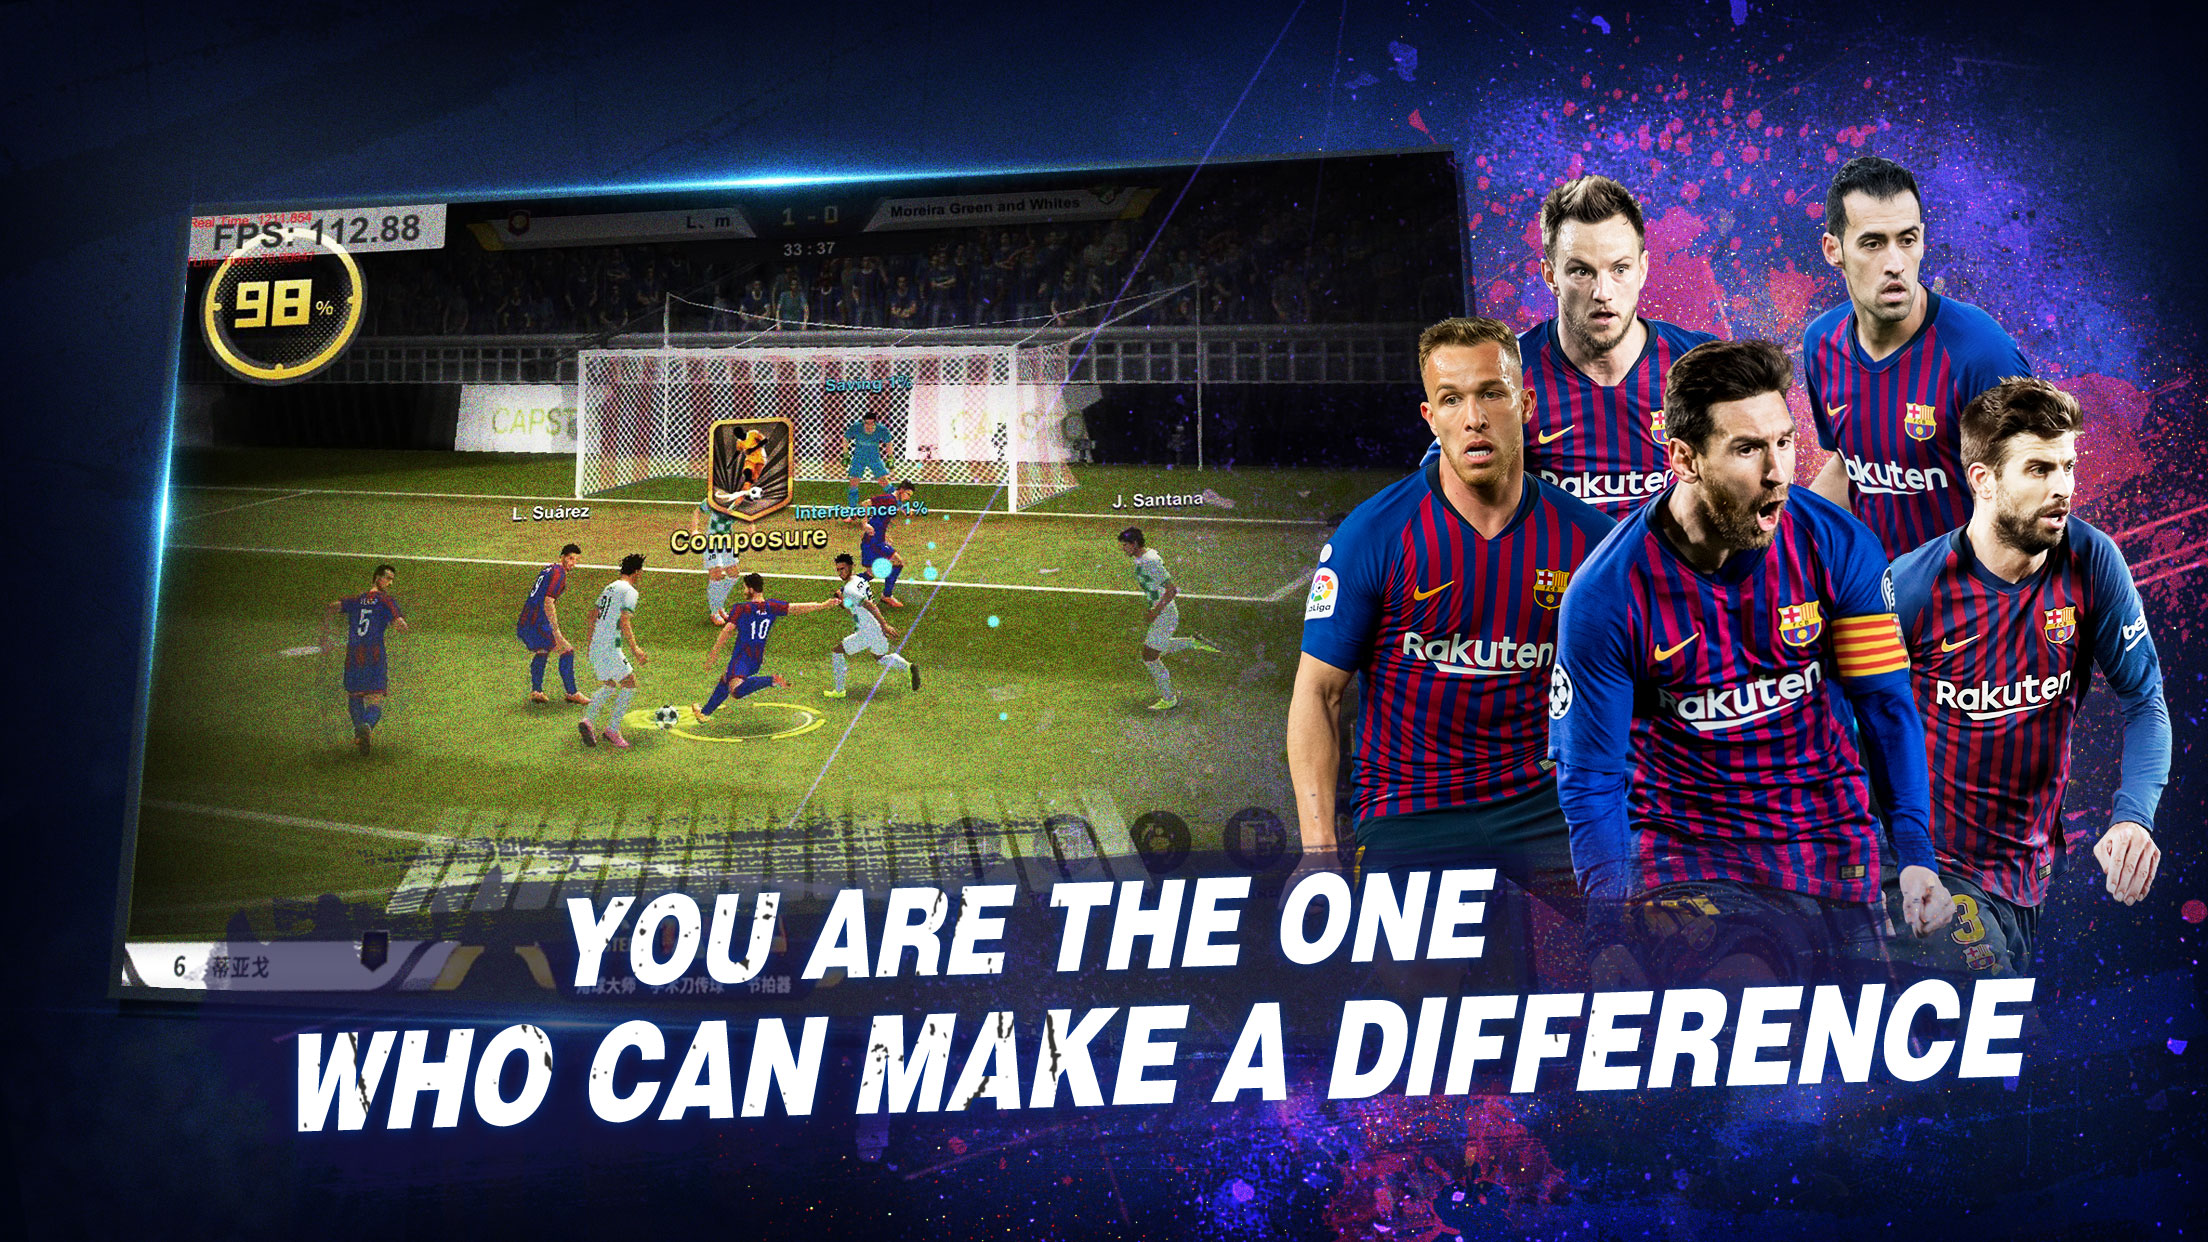 Champions Manager Mobasaka offers authentic Football management simulation with partnerships with FC Barcelona.